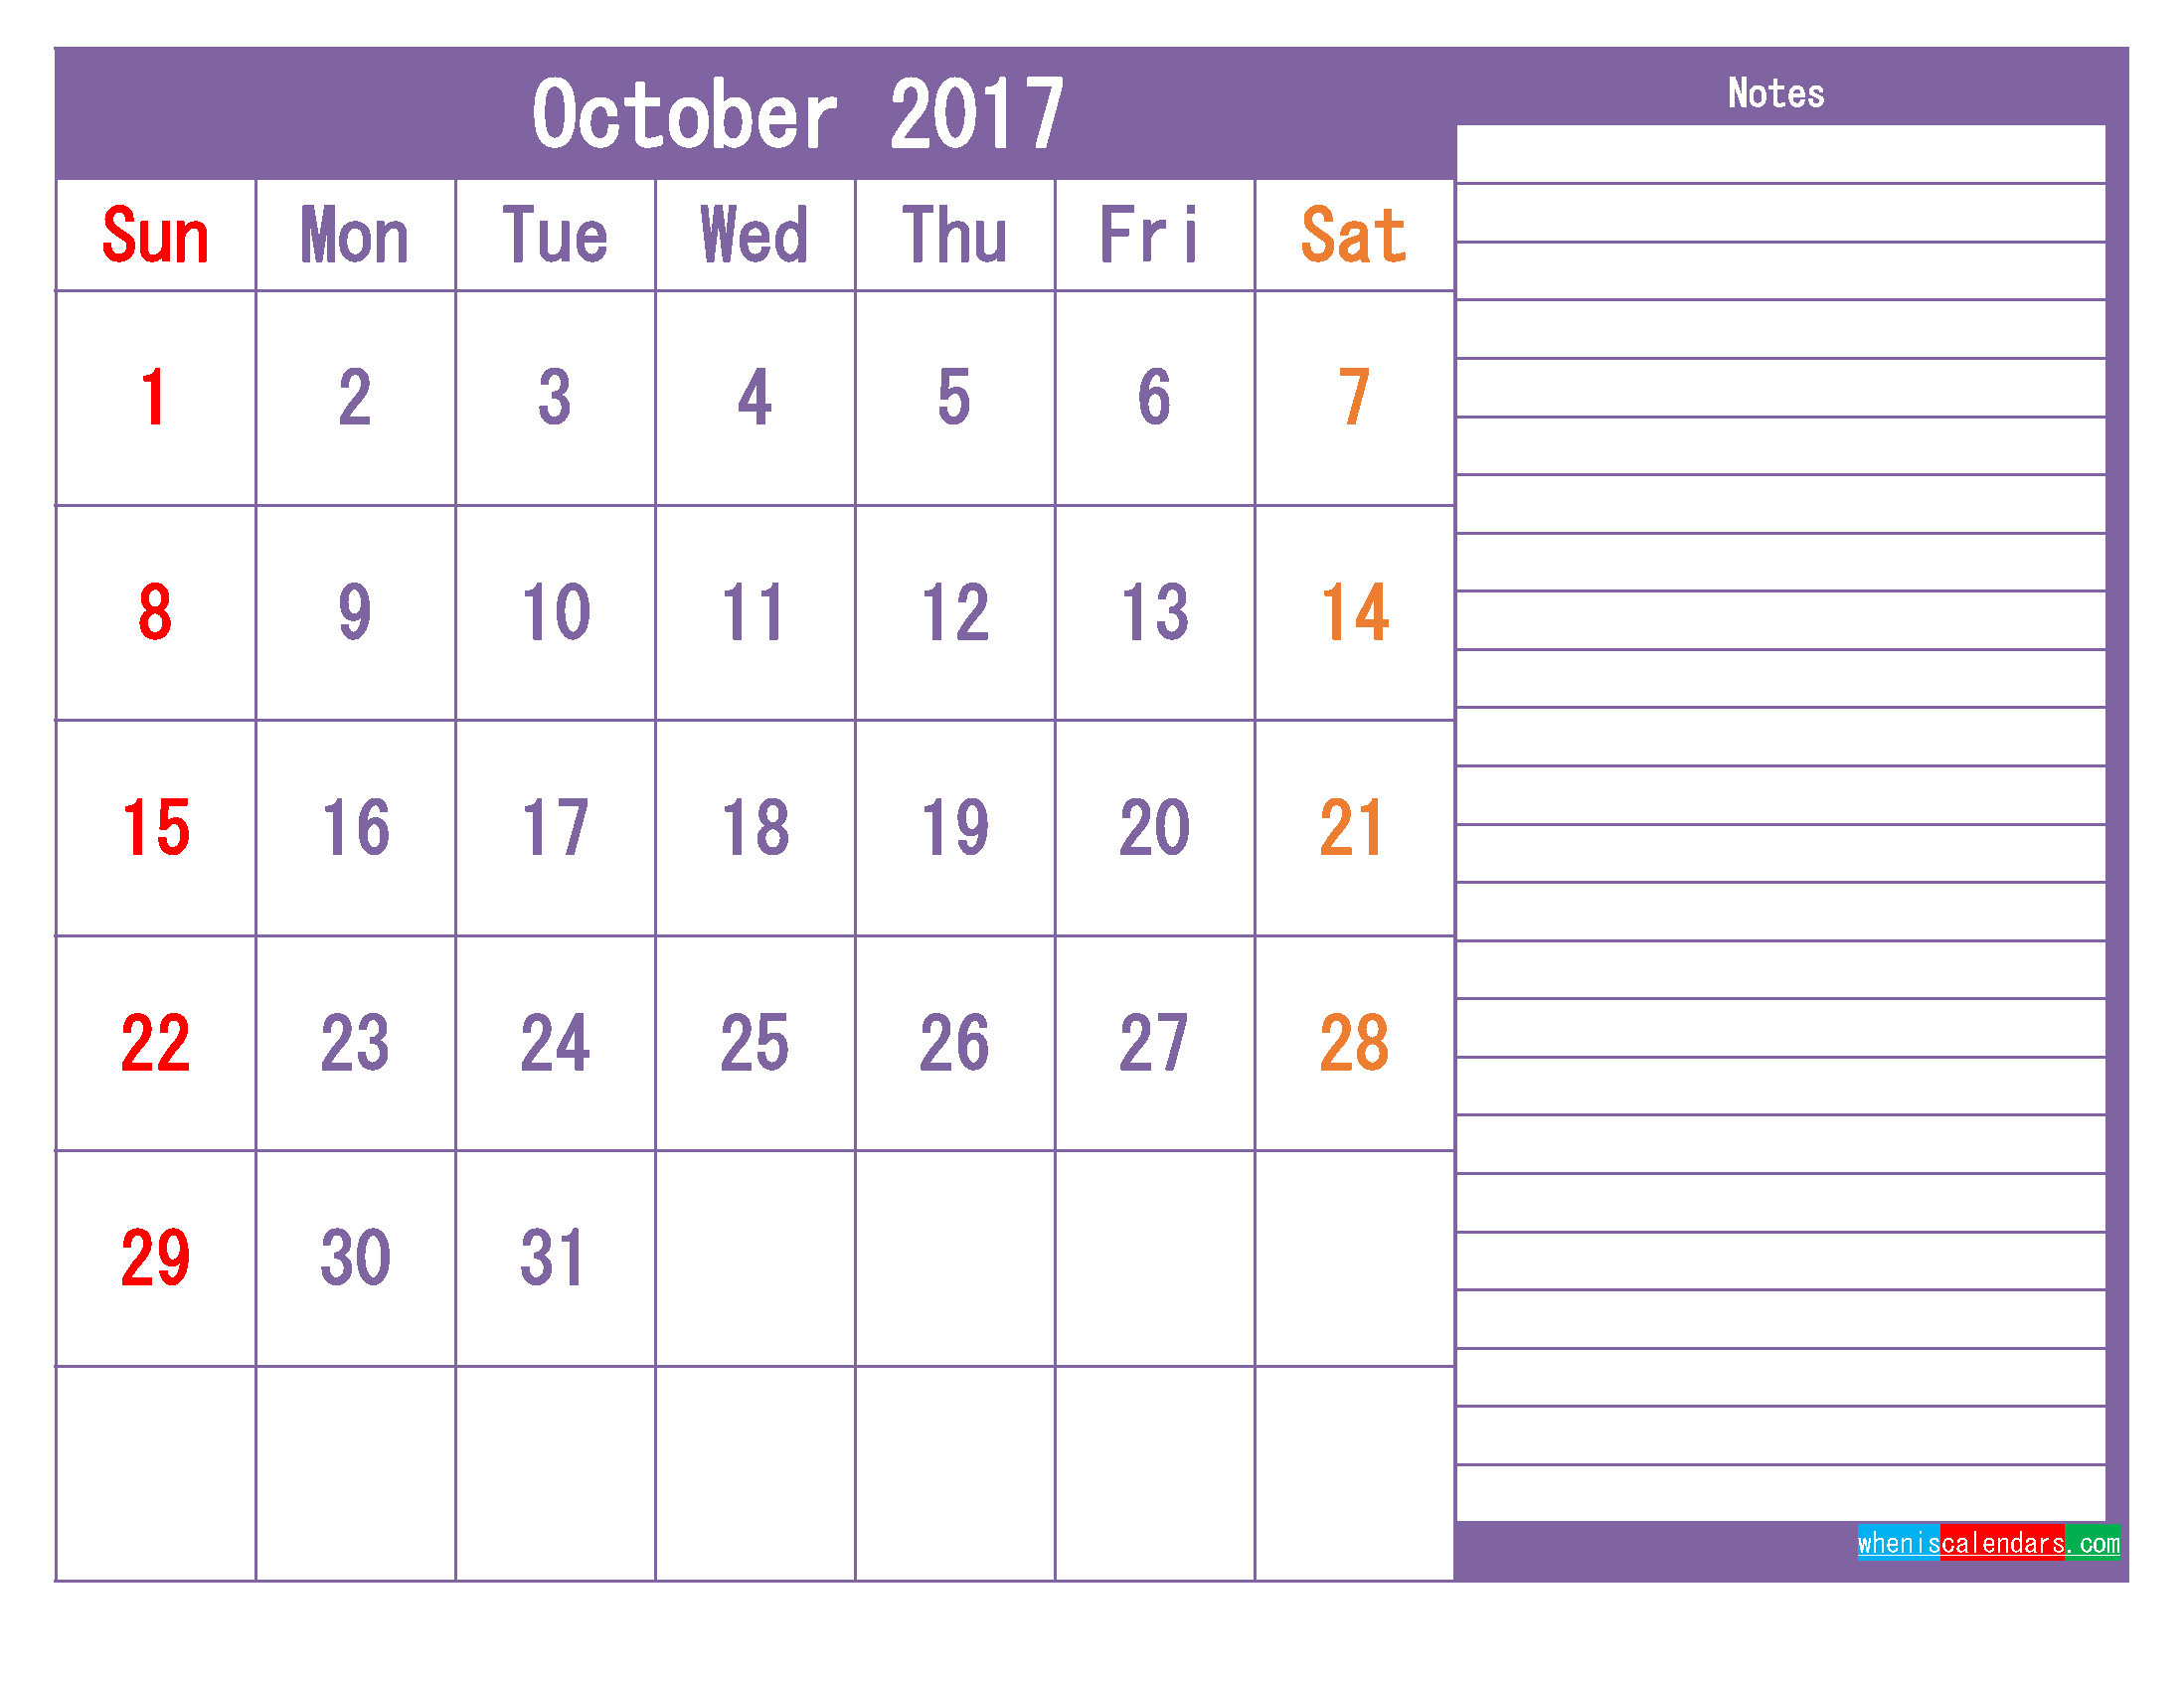 October 2017 Printable Calendar Template as PDF and PNG